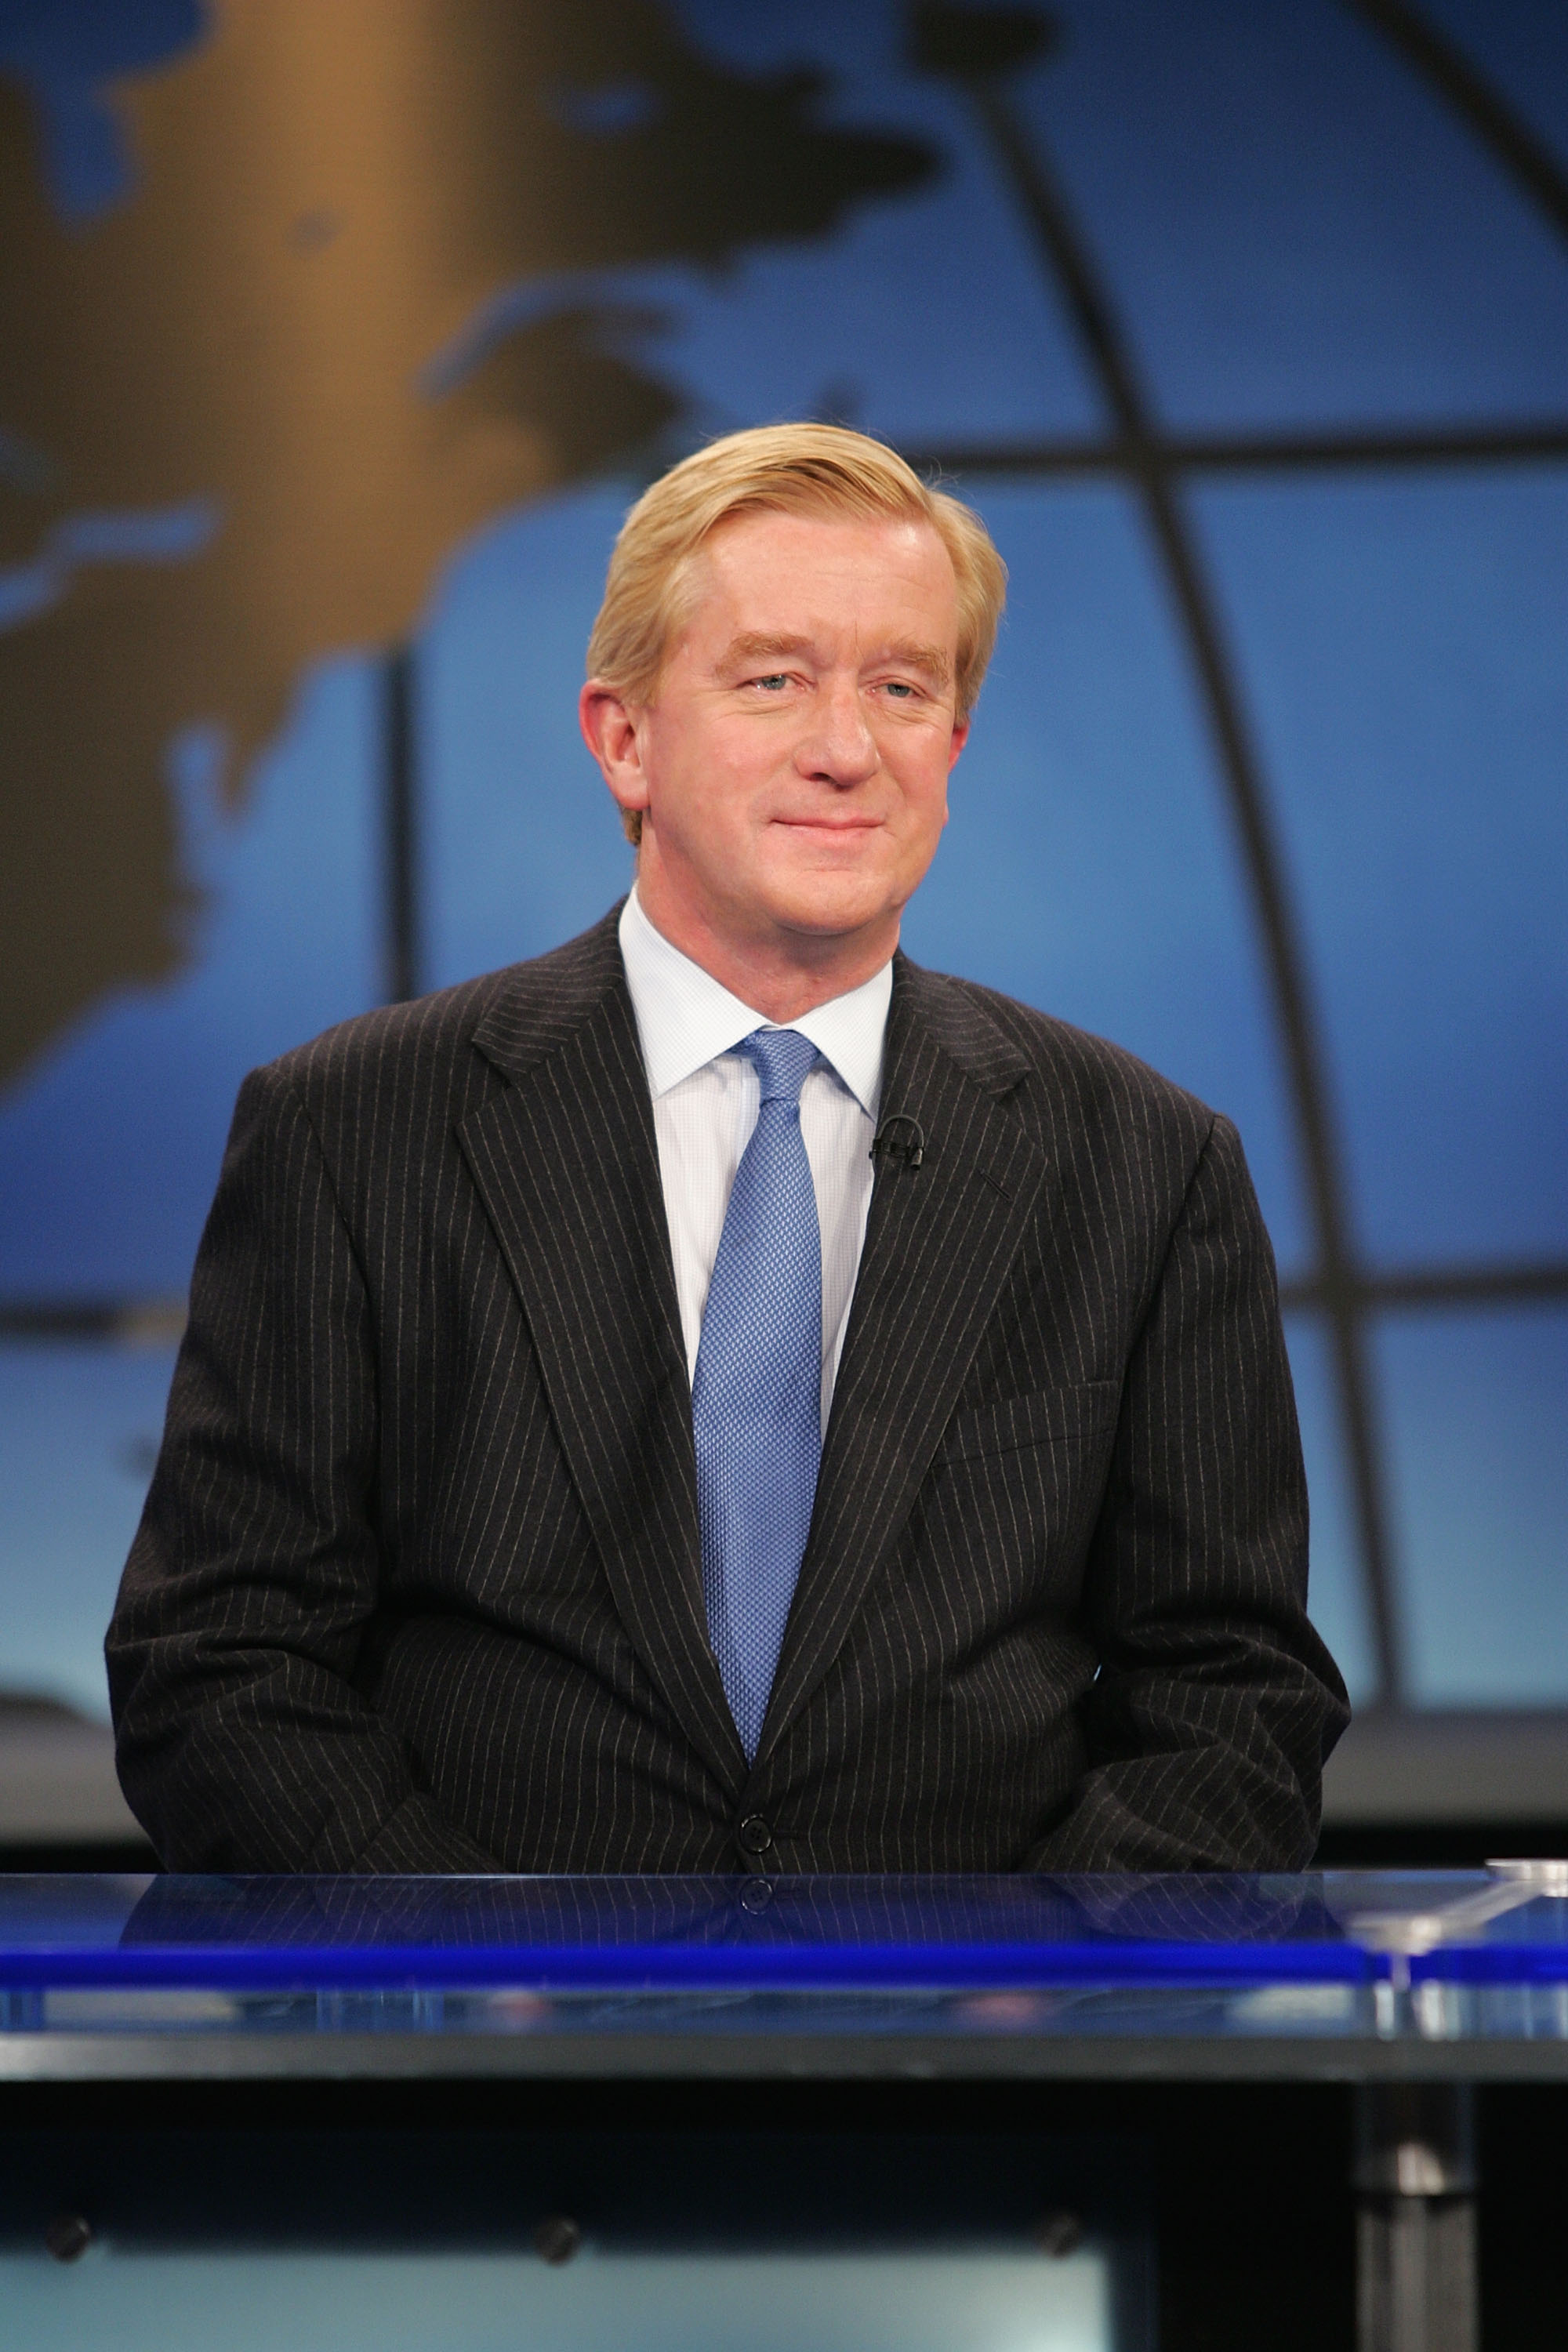 an introduction to the life of governor william weld Former massachusetts governor bill weld provides clients with counsel related  to government strategies, litigation, and general business advice bill was.